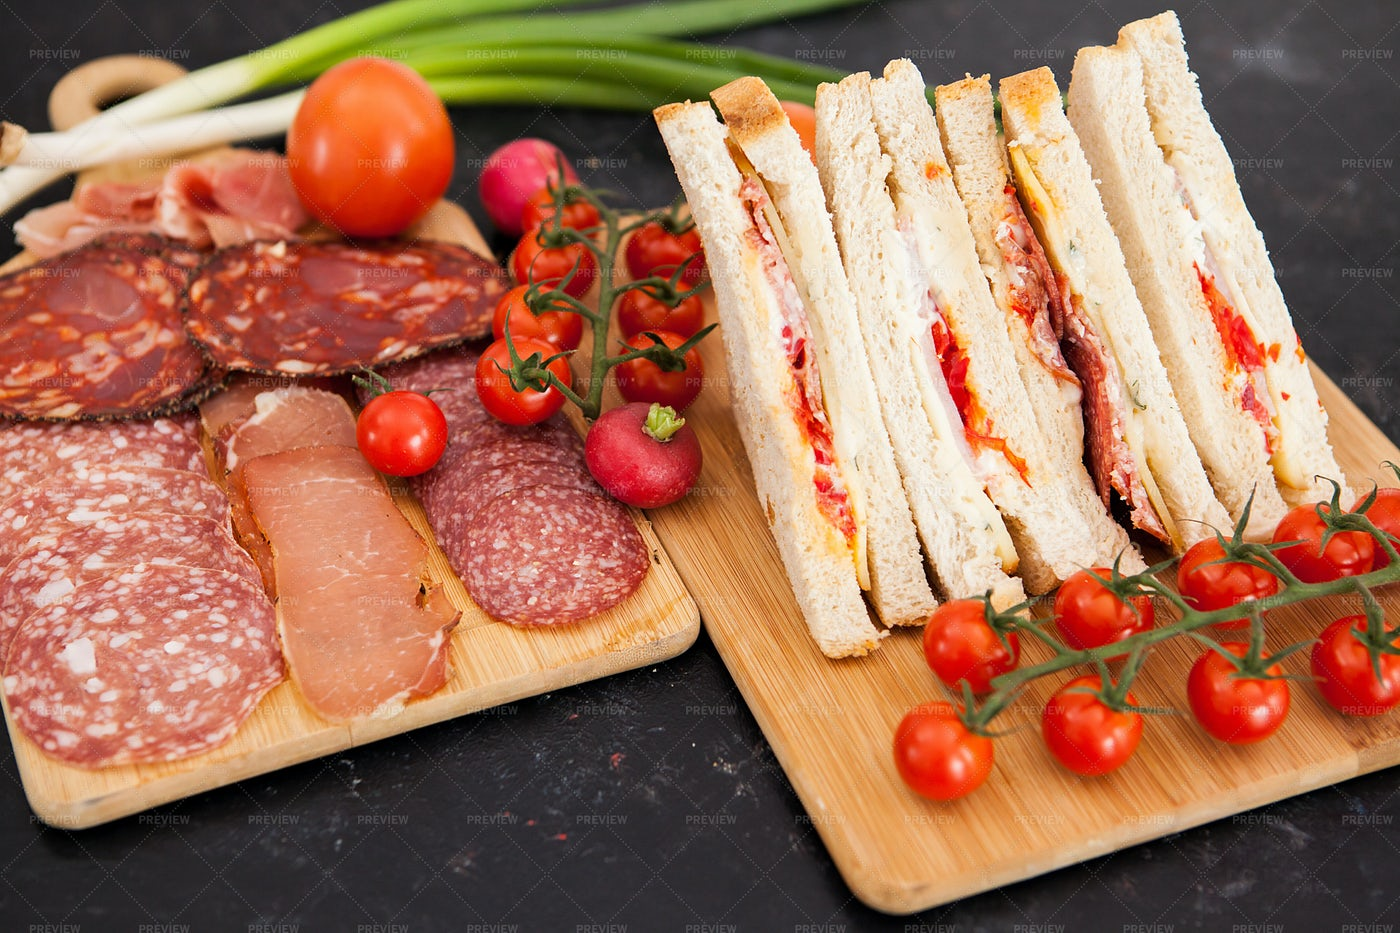 Platters Of Meat And Sandwiches: Stock Photos